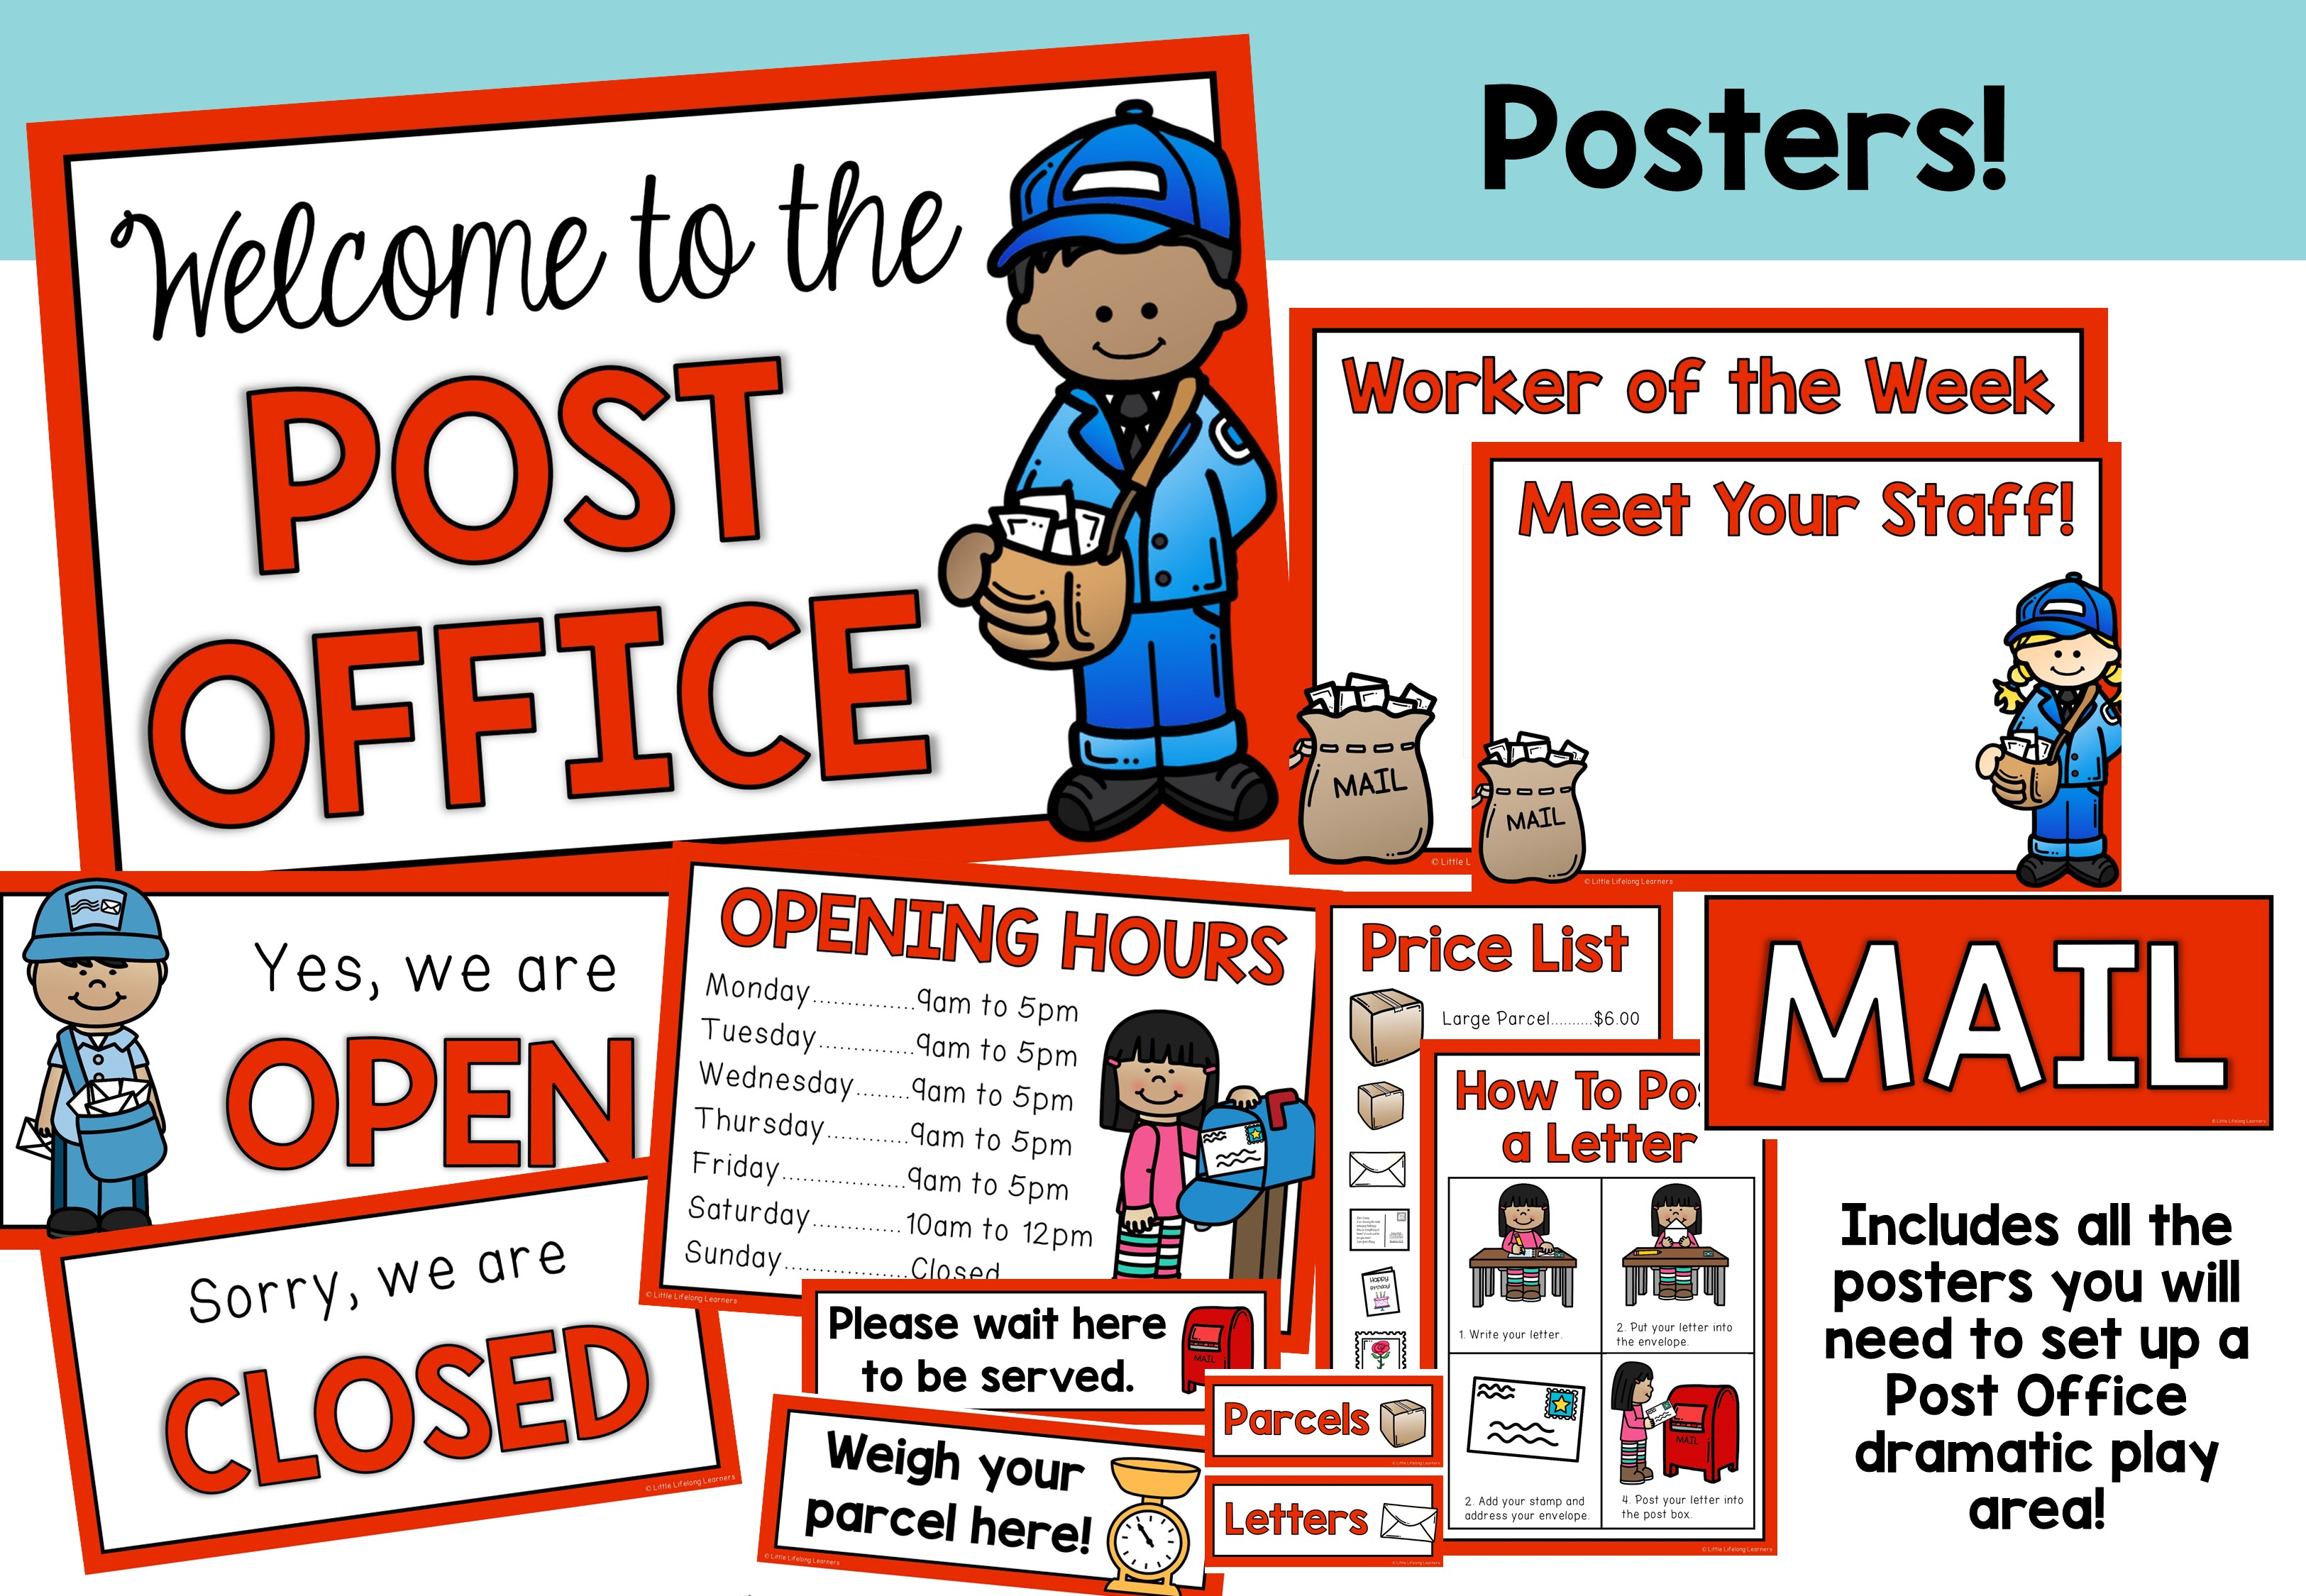 Post Office Dramatic Play Set